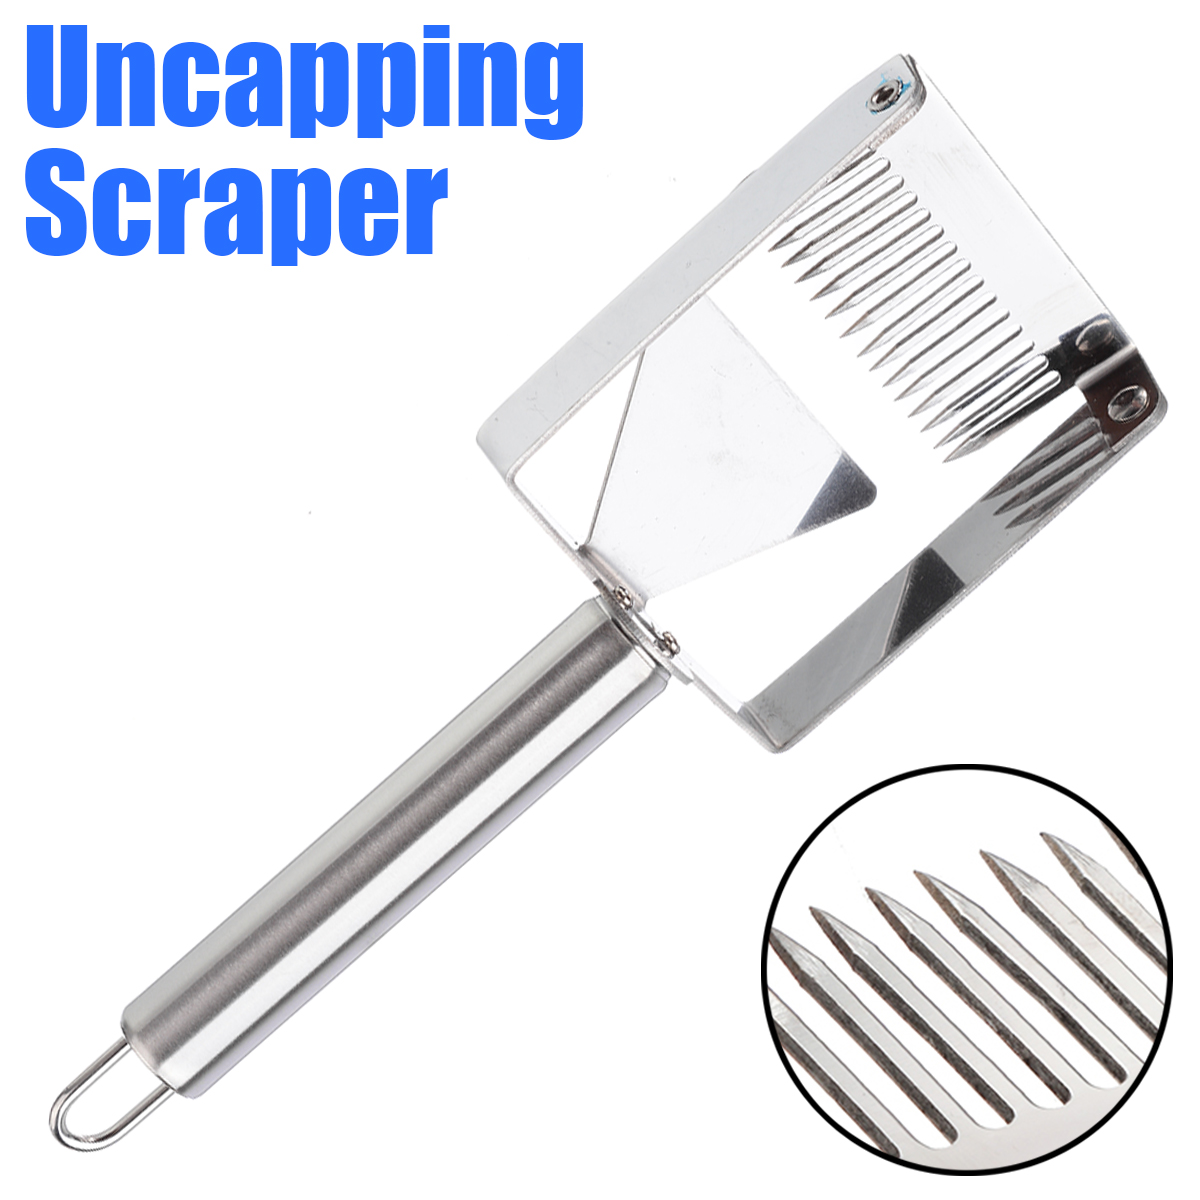 1pc Stainless Steel Bee Hive Uncapping Honey Fork Shovel Sunken Area Honey Scraper Beekeeping Tool Agricultural Equipment 21cm